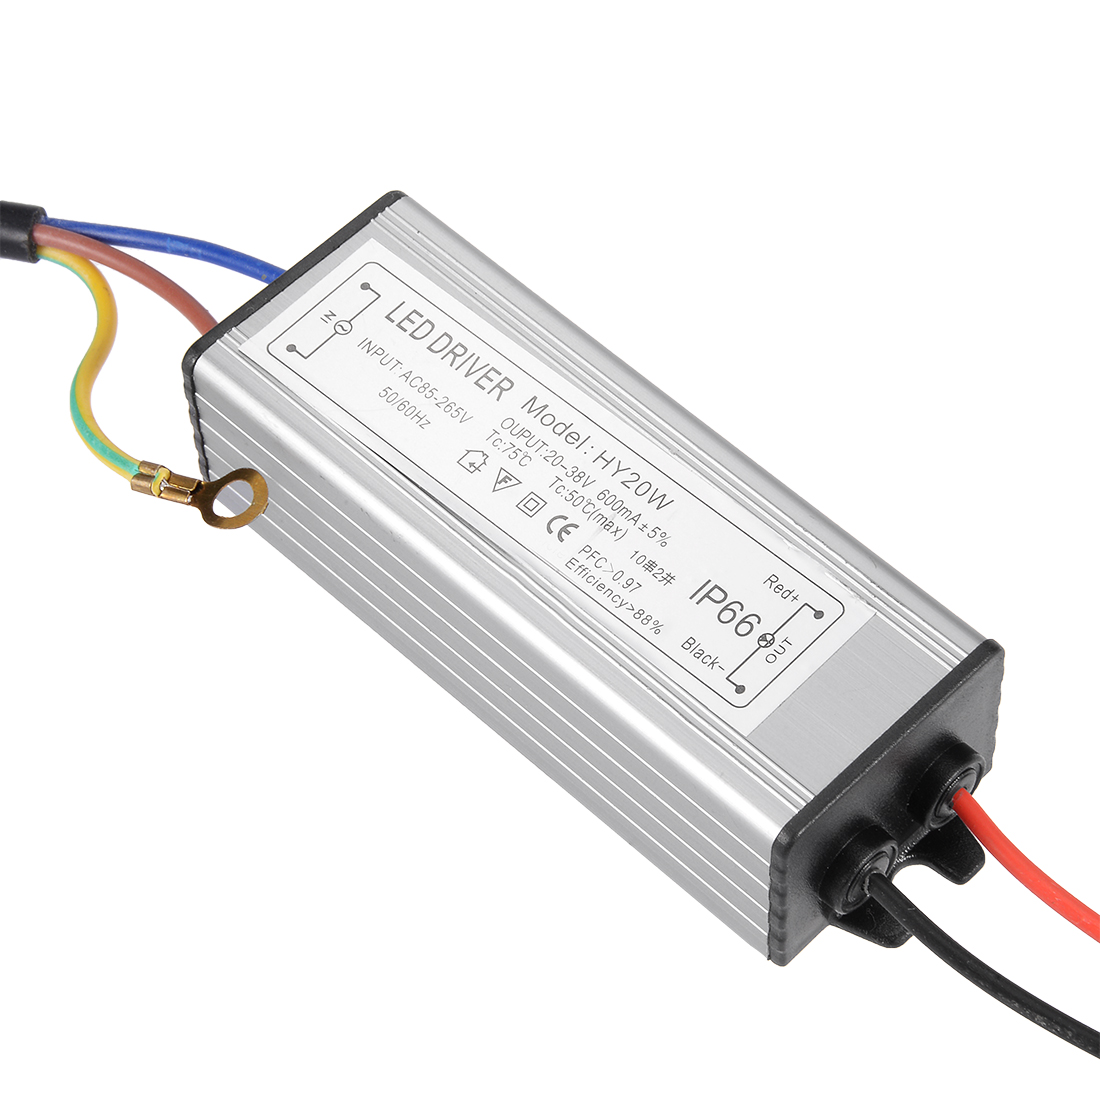 AC85-265V to DC 20-38V 20W Transformer IP66 Waterproof LED Driver Power Supply